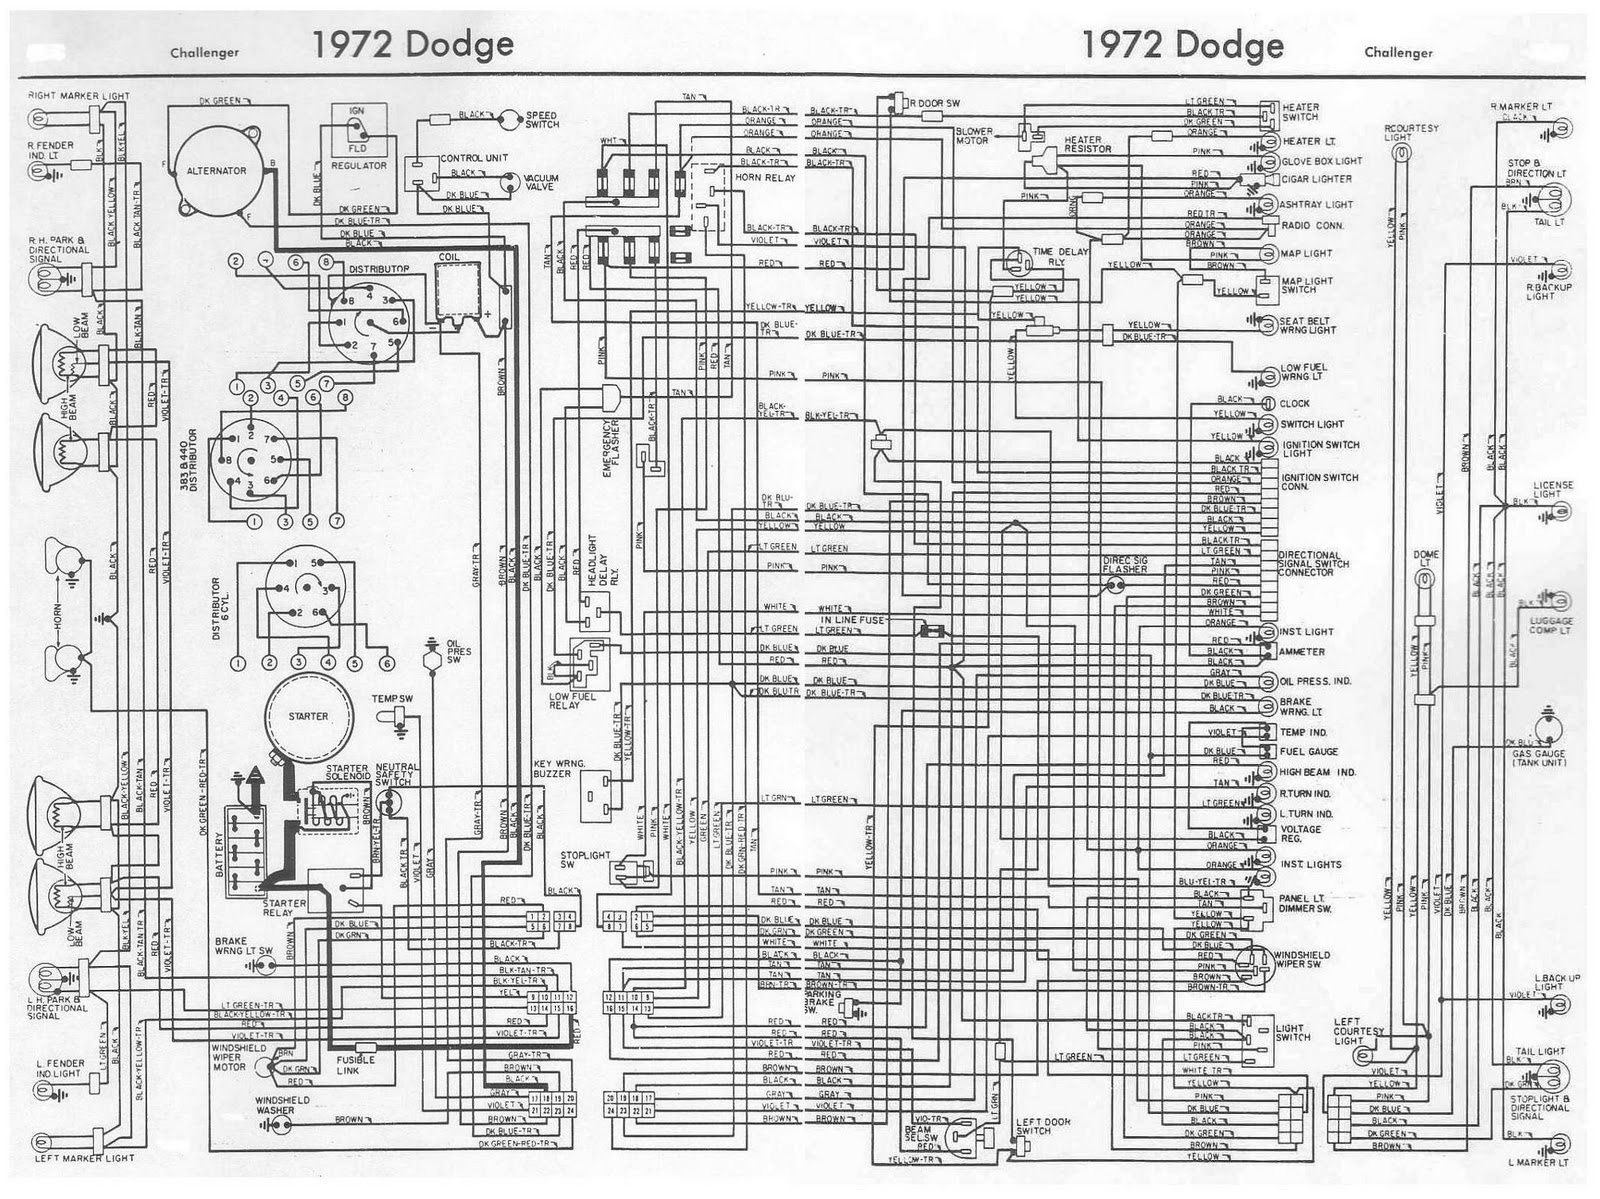 70 super bee wiring diagram 1970 dodge challenger rallye dash color wiring diagram - somurich.com #10